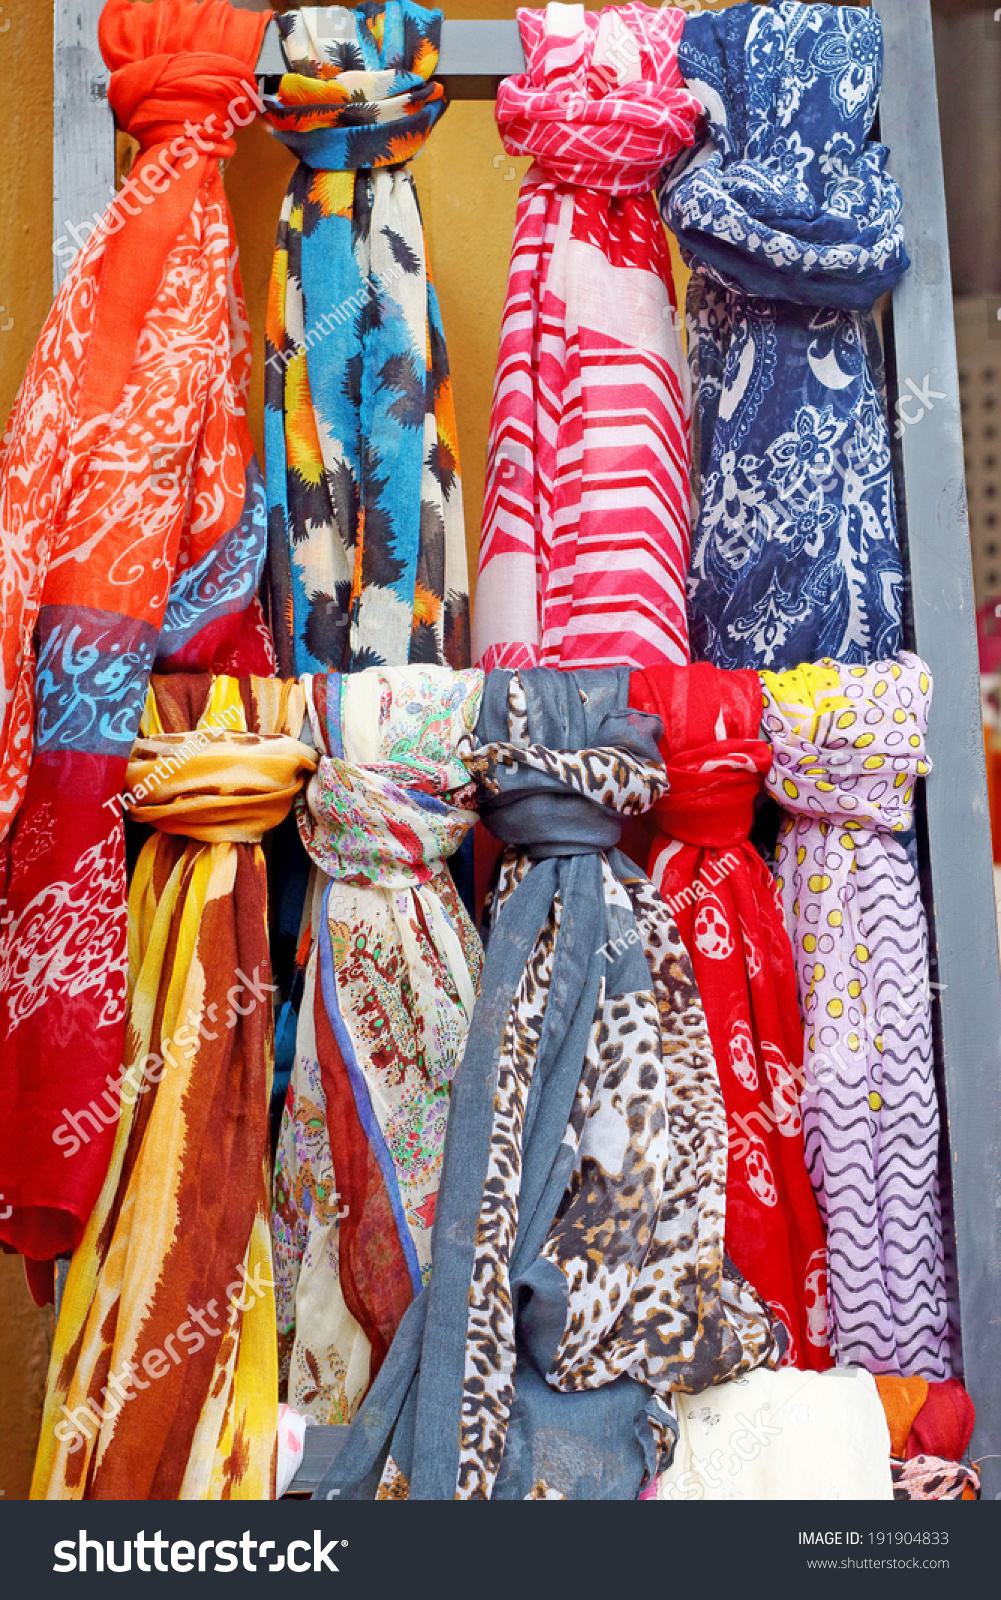 Scarf Shop Market Stock Photo 191904833 - Shutterstock